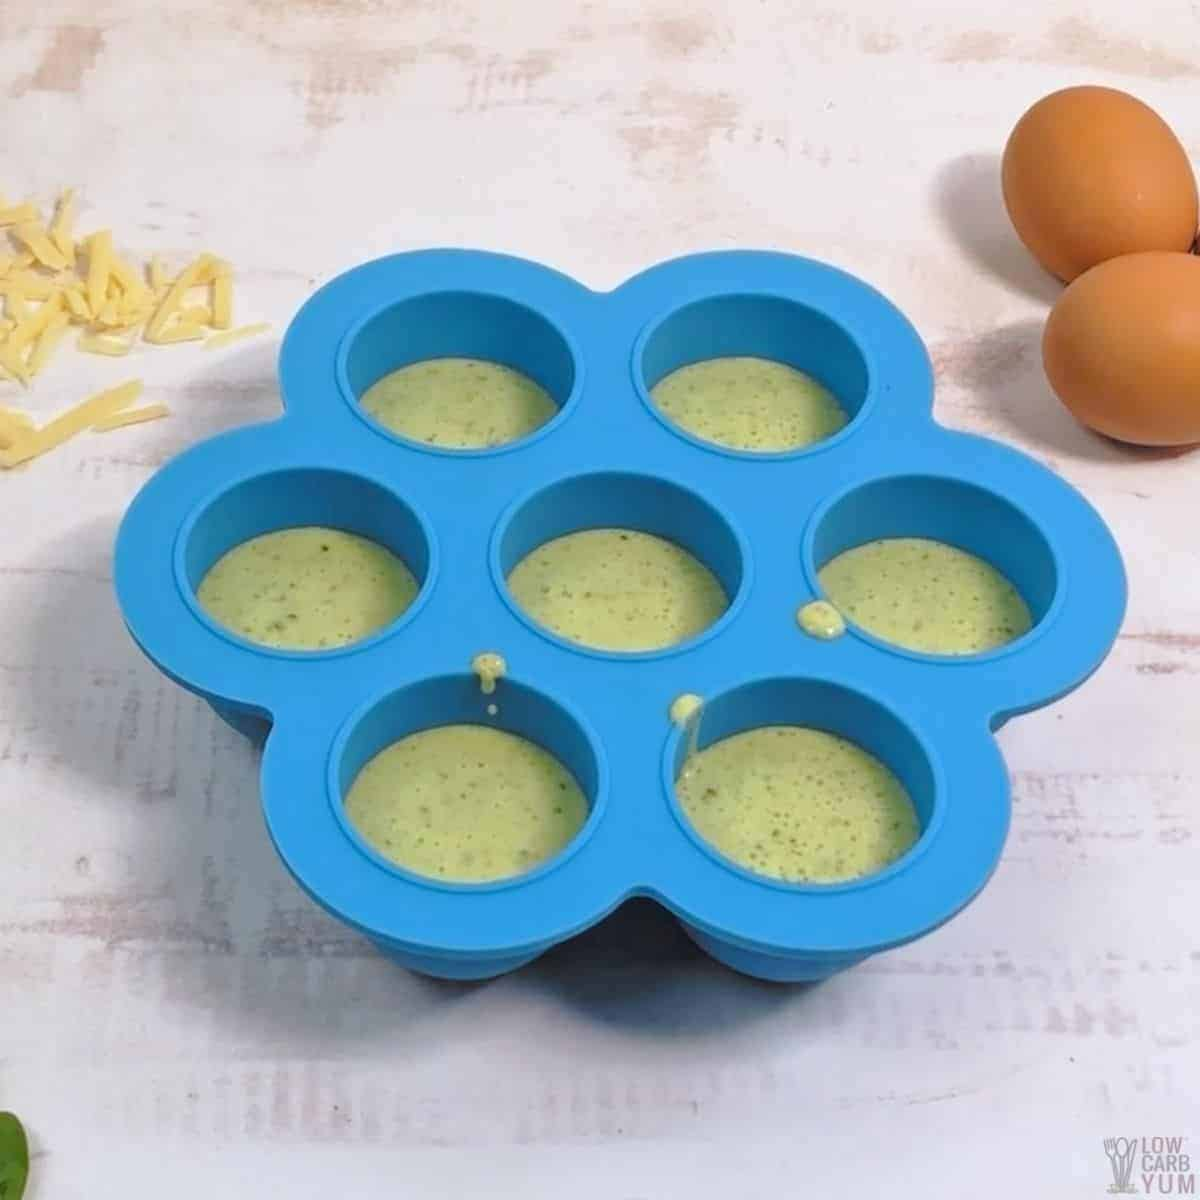 filled silicone egg bite mold